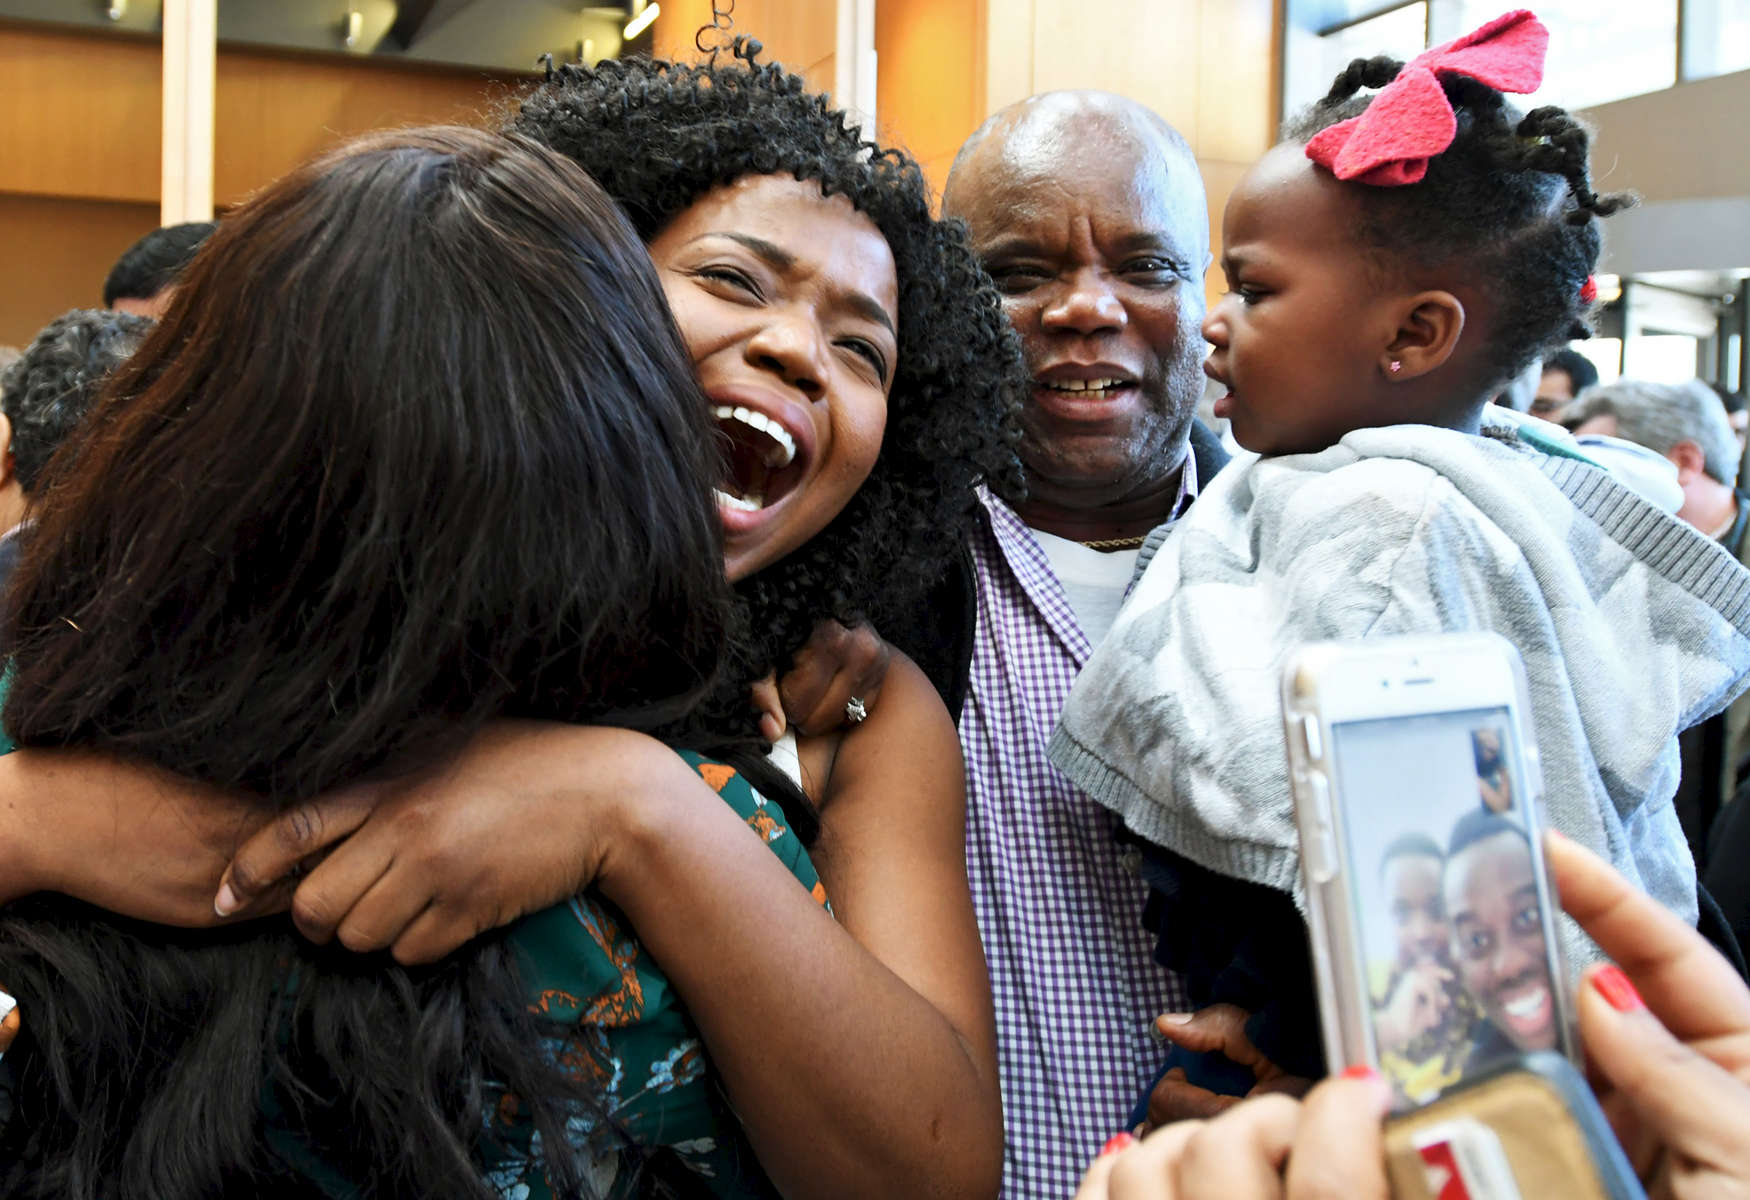 UMass Medical School student Noreen Okwara, 26, is ecstatic over discovering she has been matched to Brigham & Women's in Boston for her residency on Match Day on Friday, March 17, 2017.